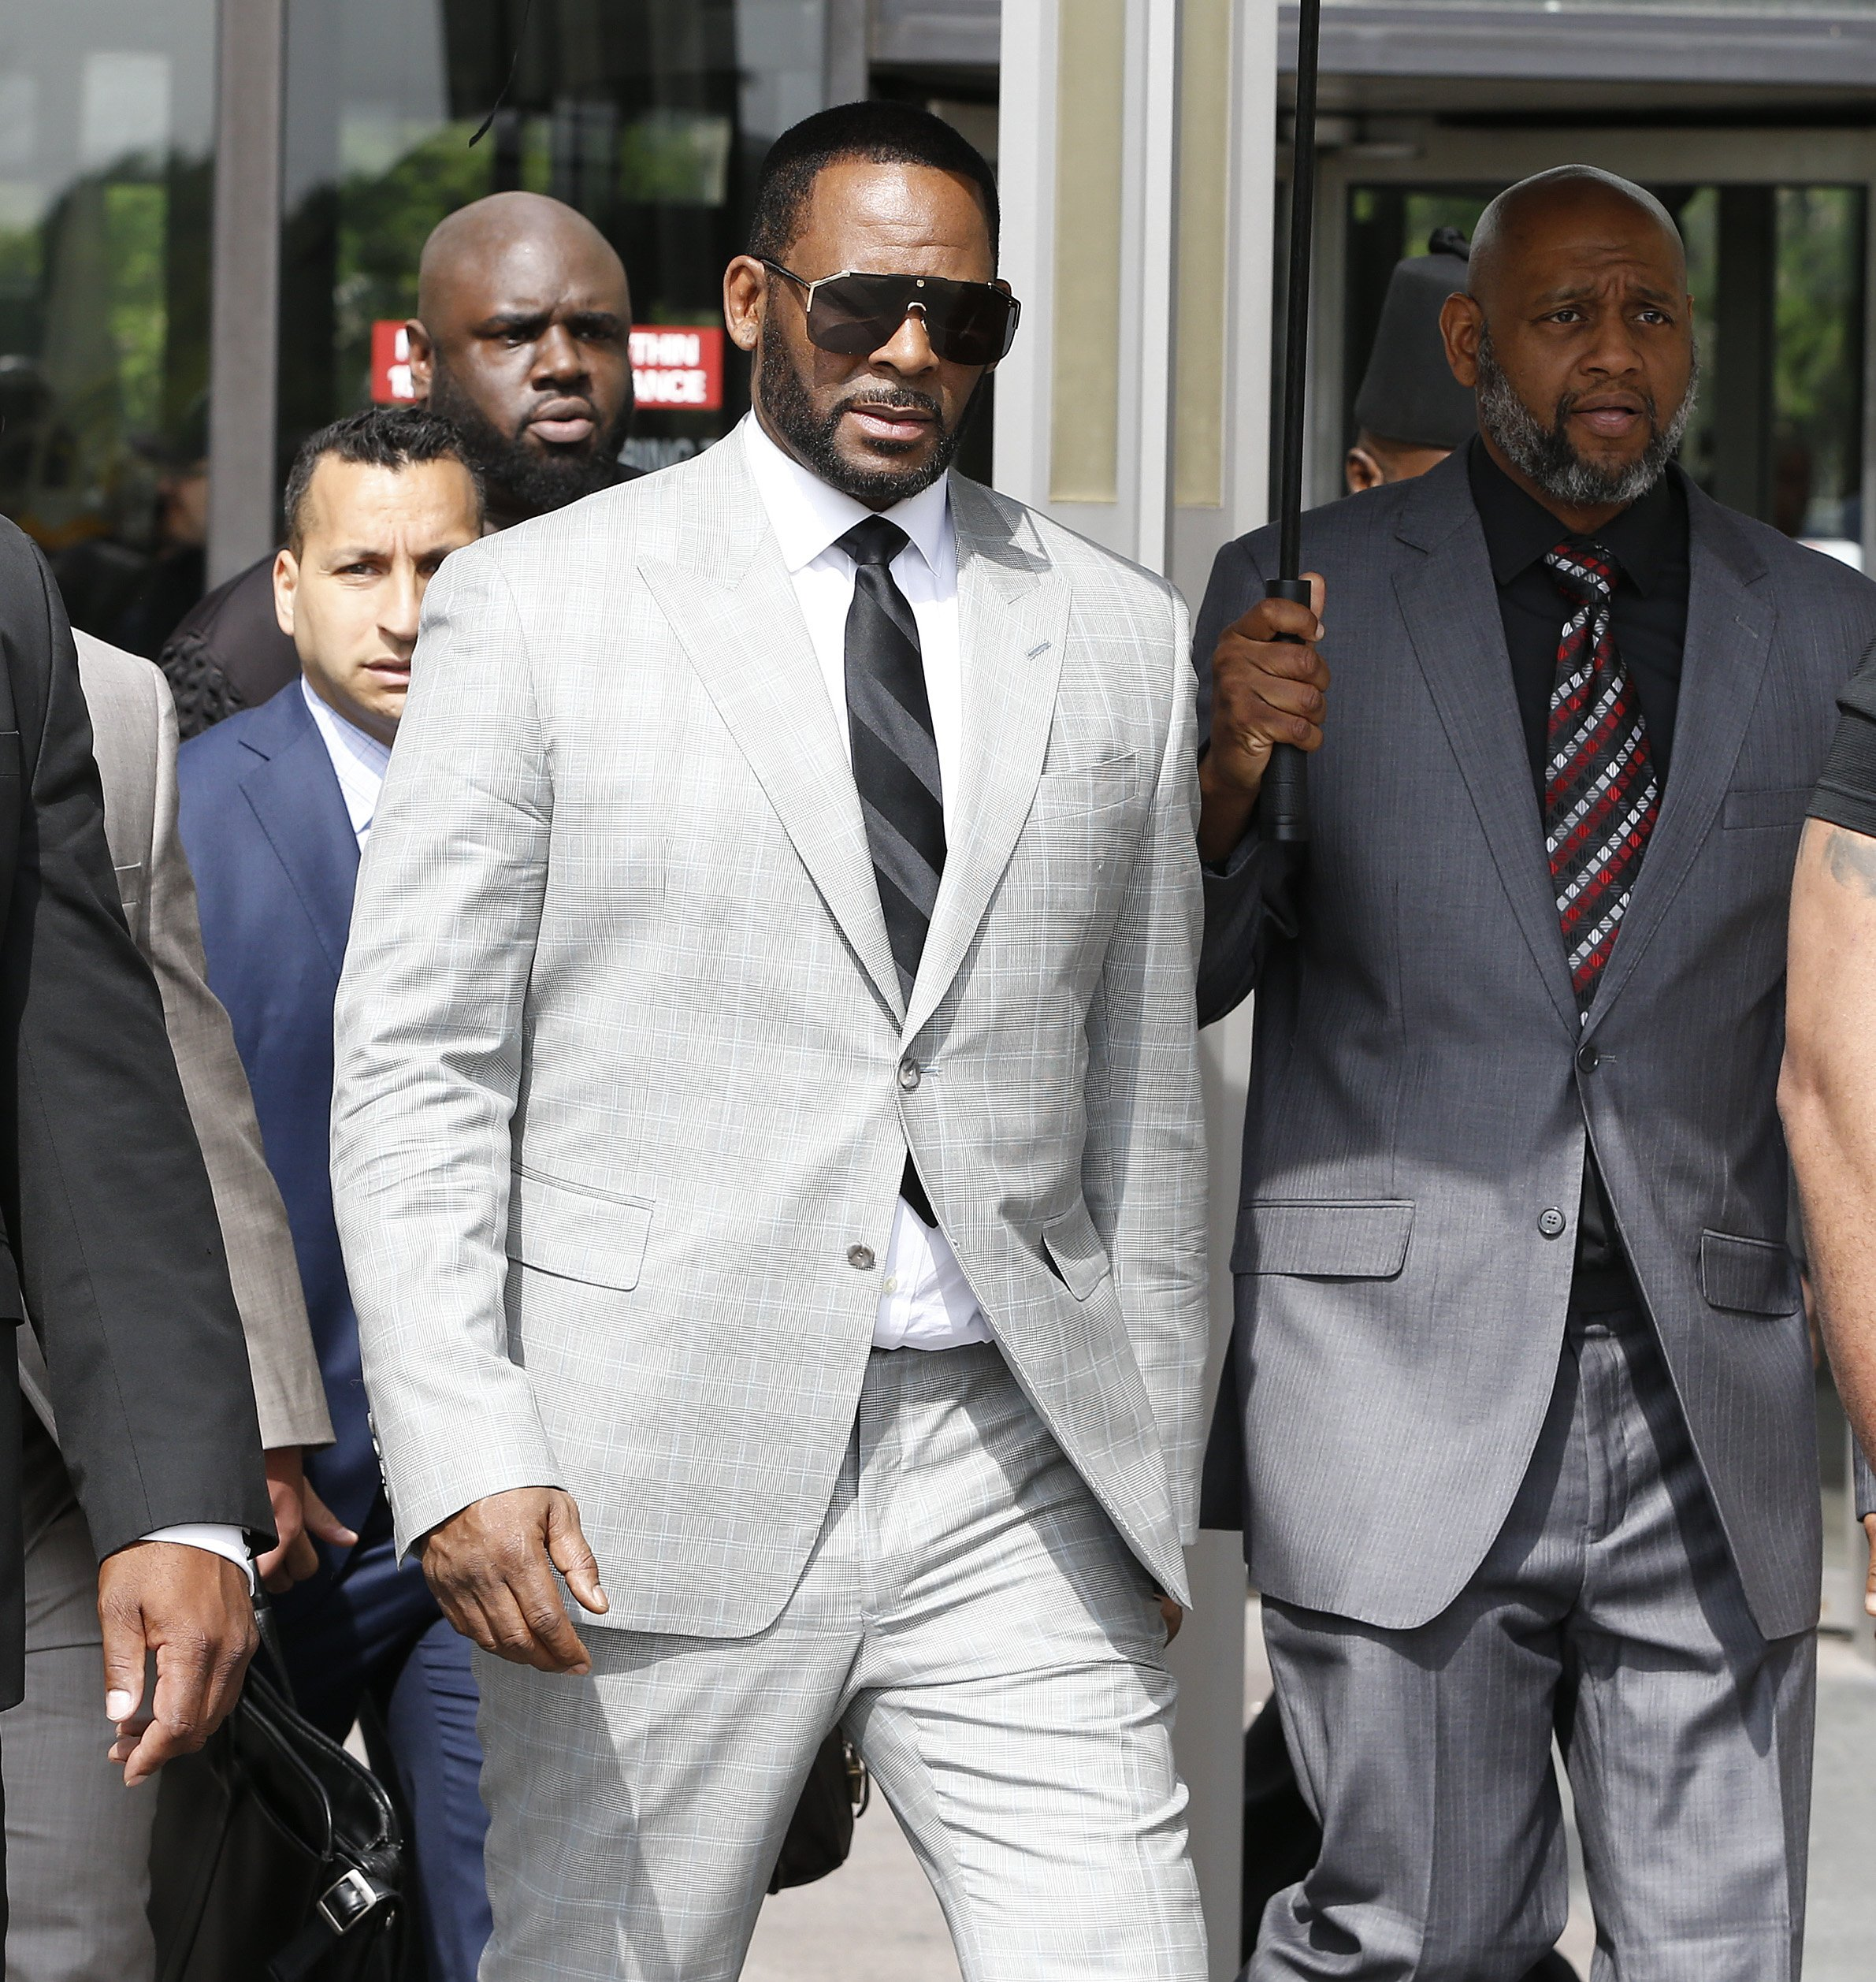 R. Kelly leaves the Leighton Criminal Courthouse on June 06, 2019 in Chicago | Photo: Getty Images